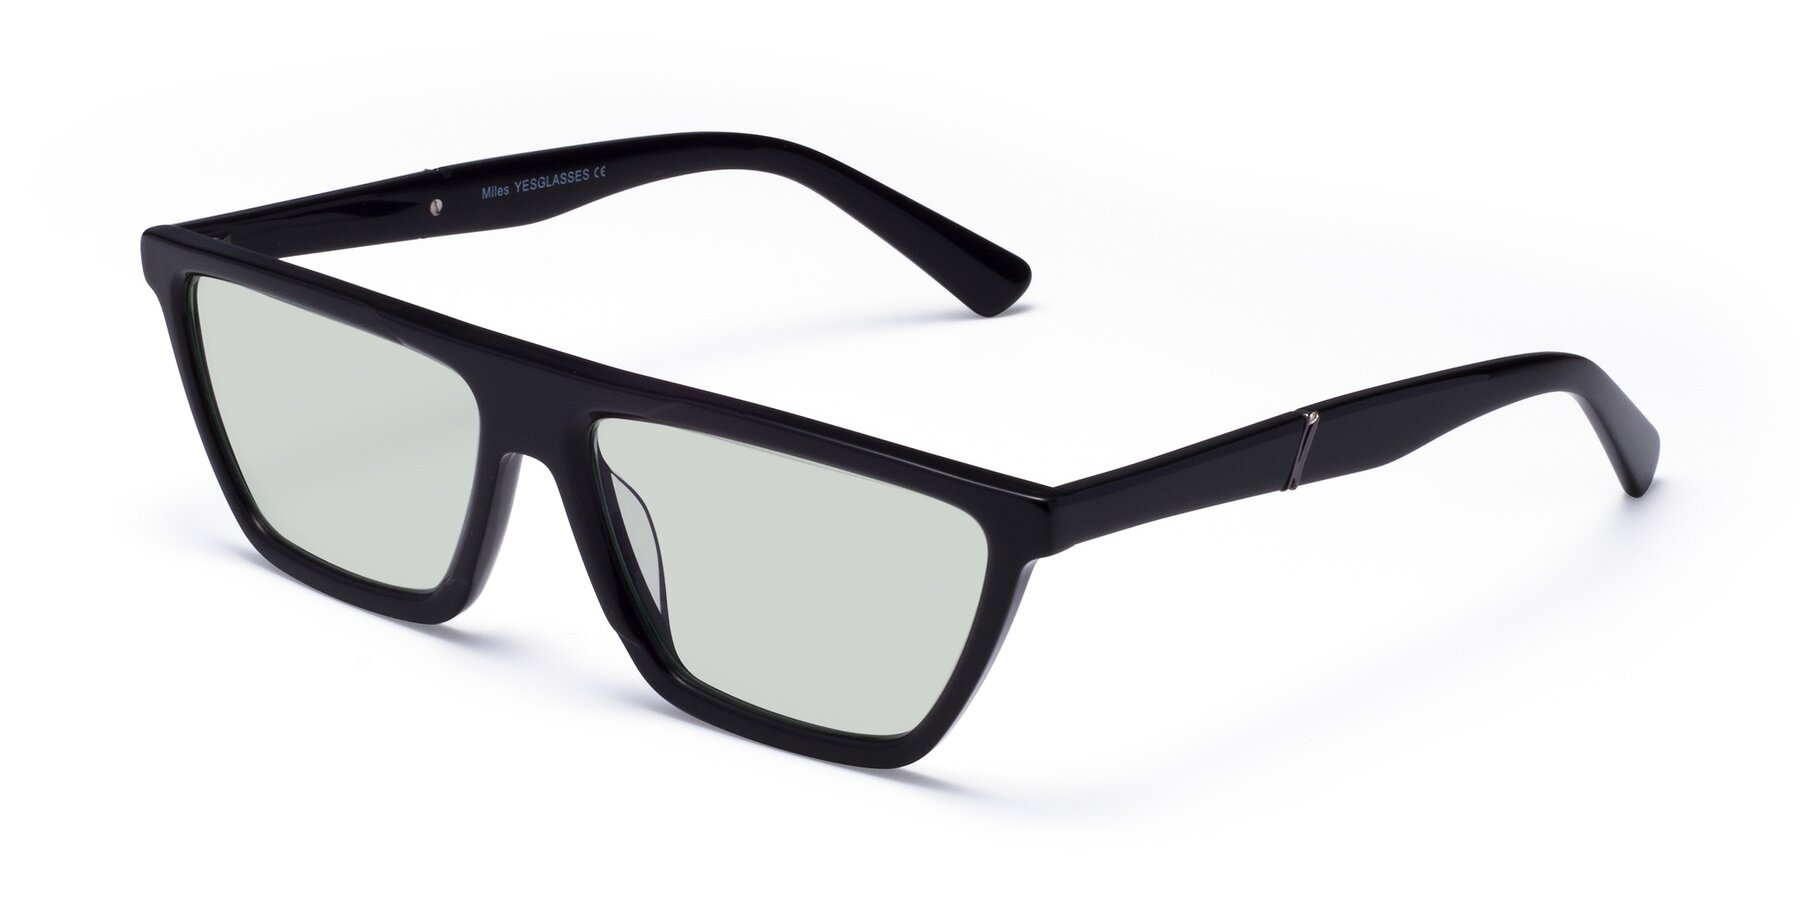 Angle of Miles in Black with Light Green Tinted Lenses